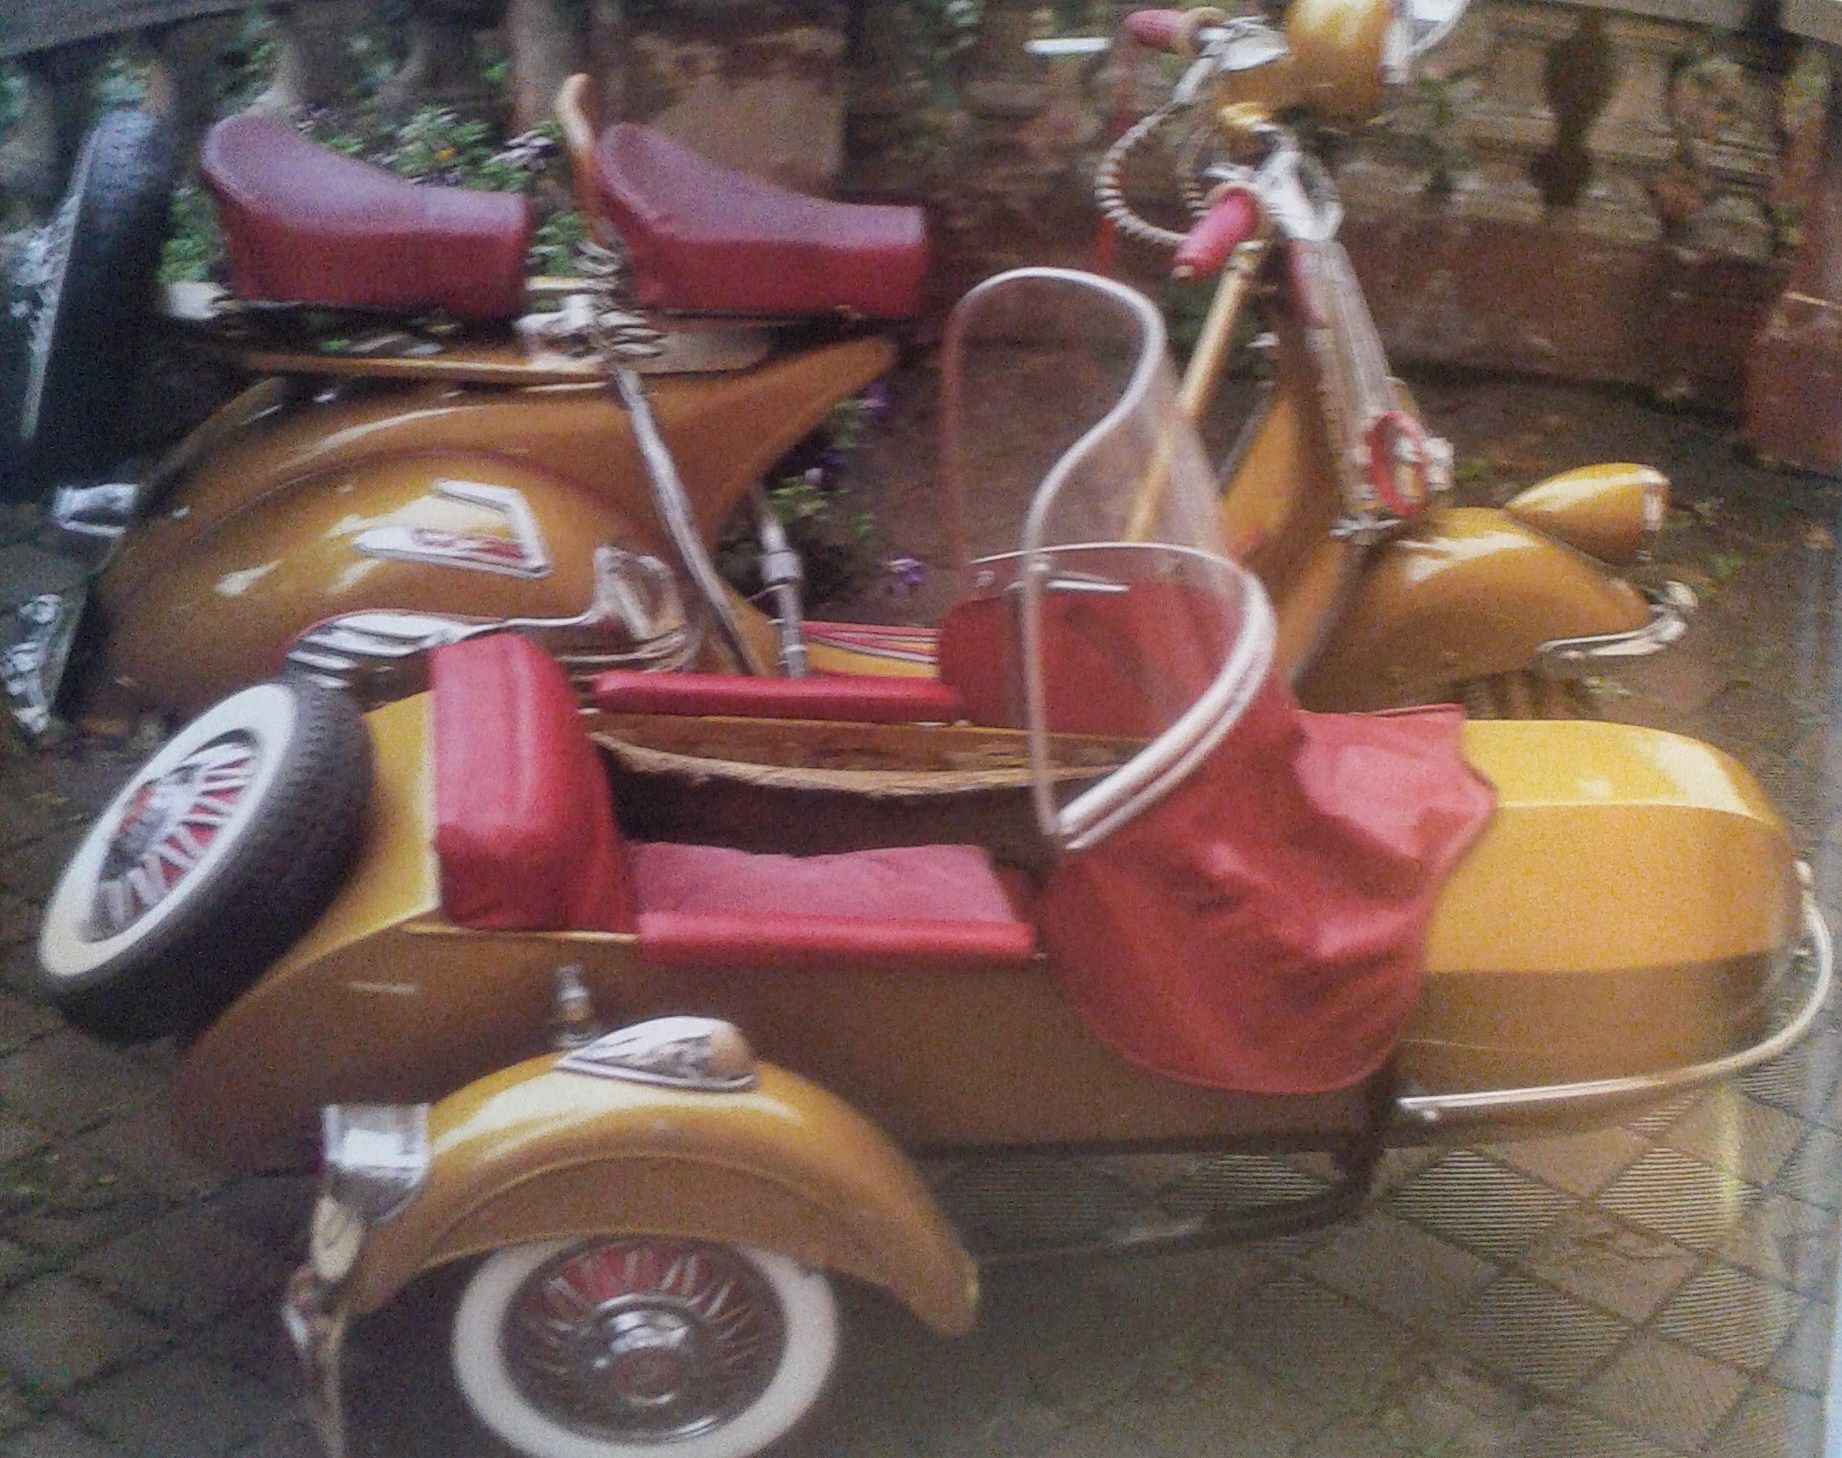 Another side car.